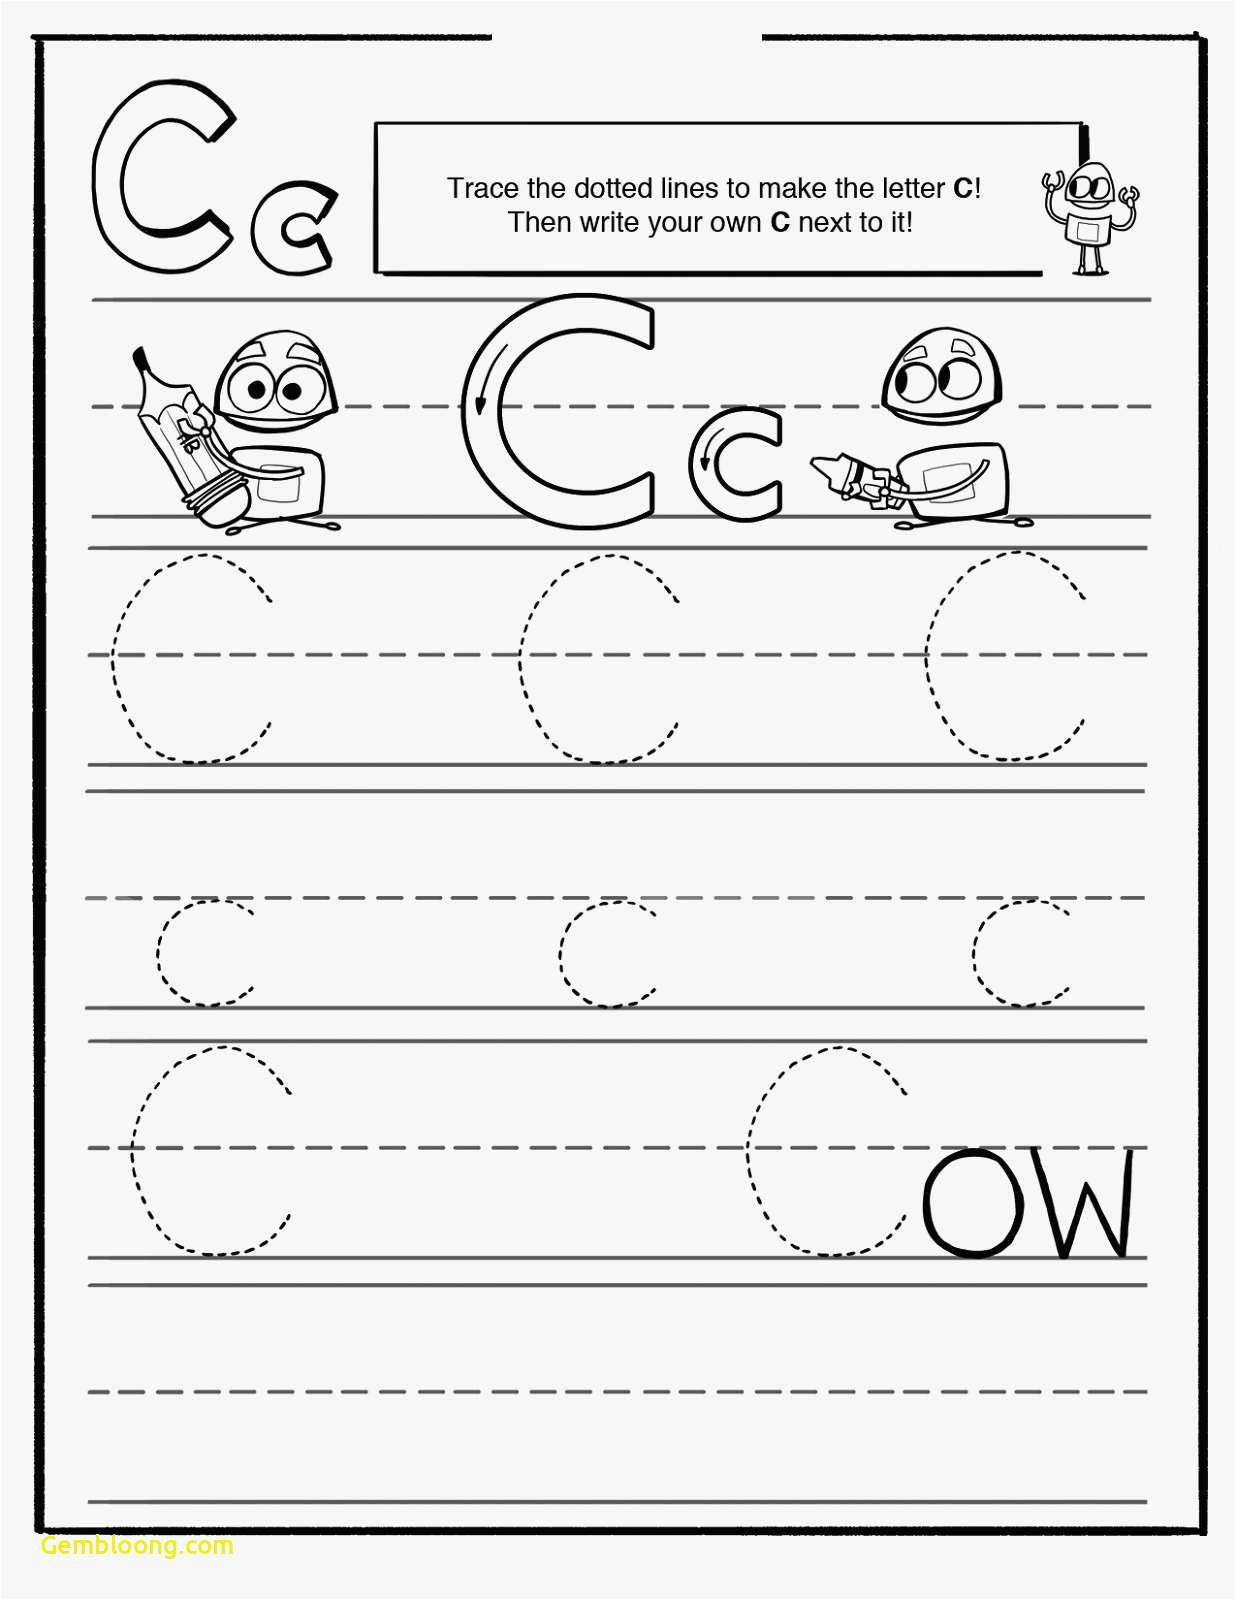 Generalaccomplished Kindergarten Counting Worksheets